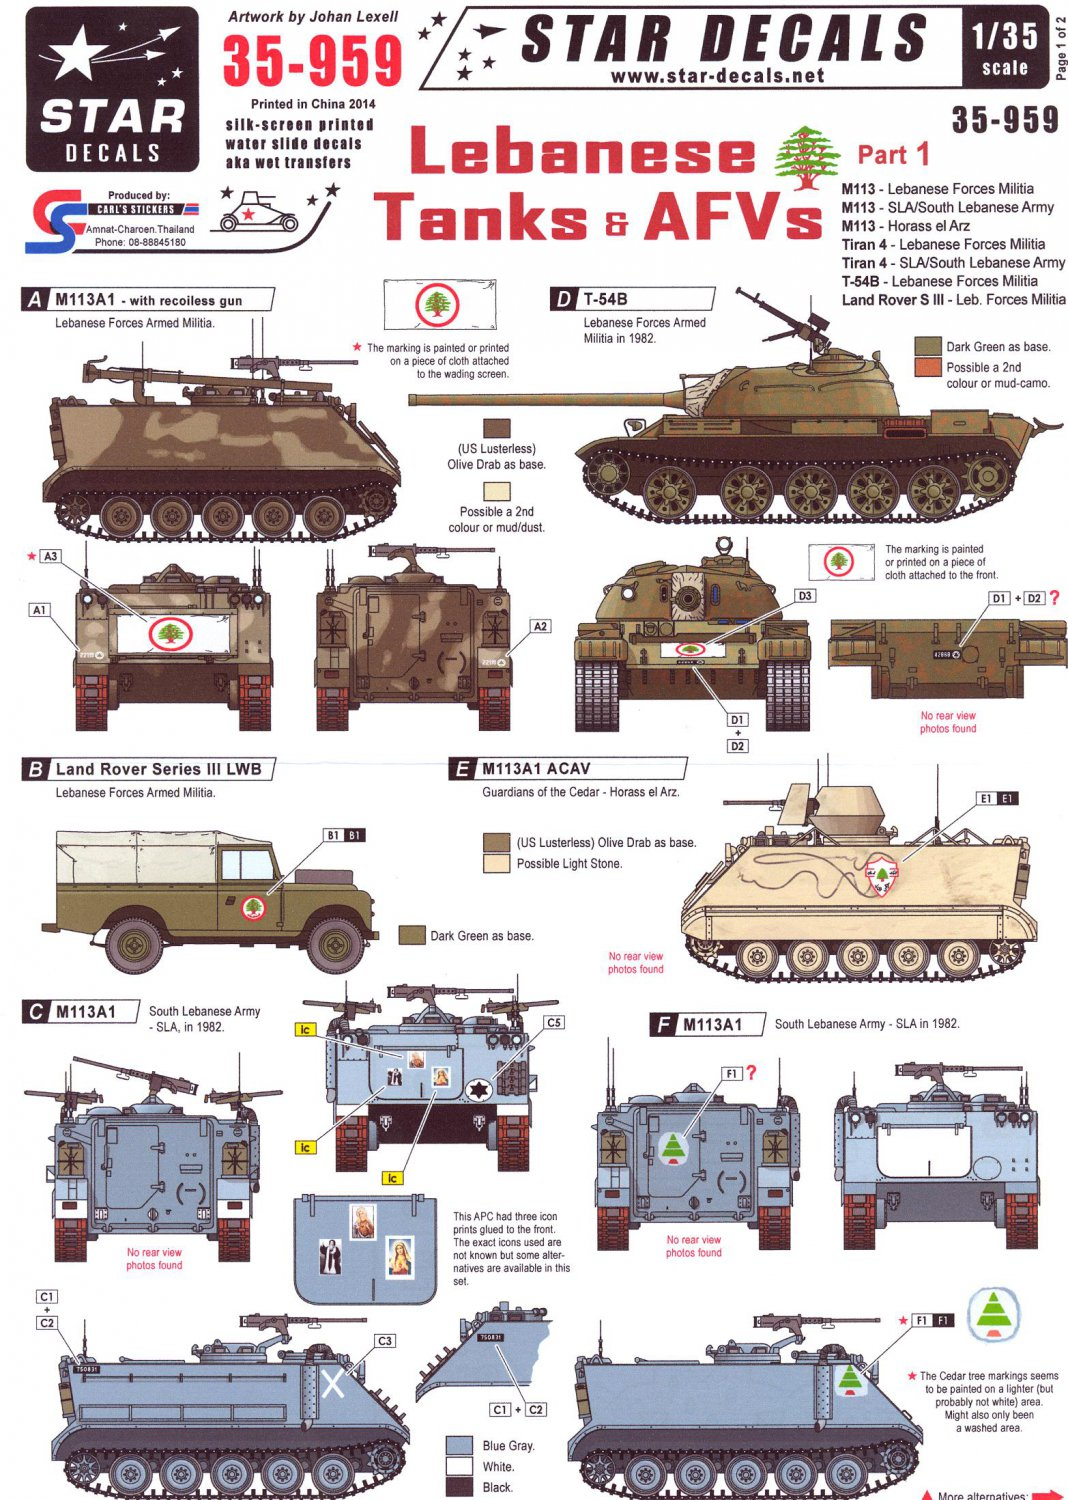 Star Decals 1 35 Lebanese Tanks And Afvs Part 1 35 959